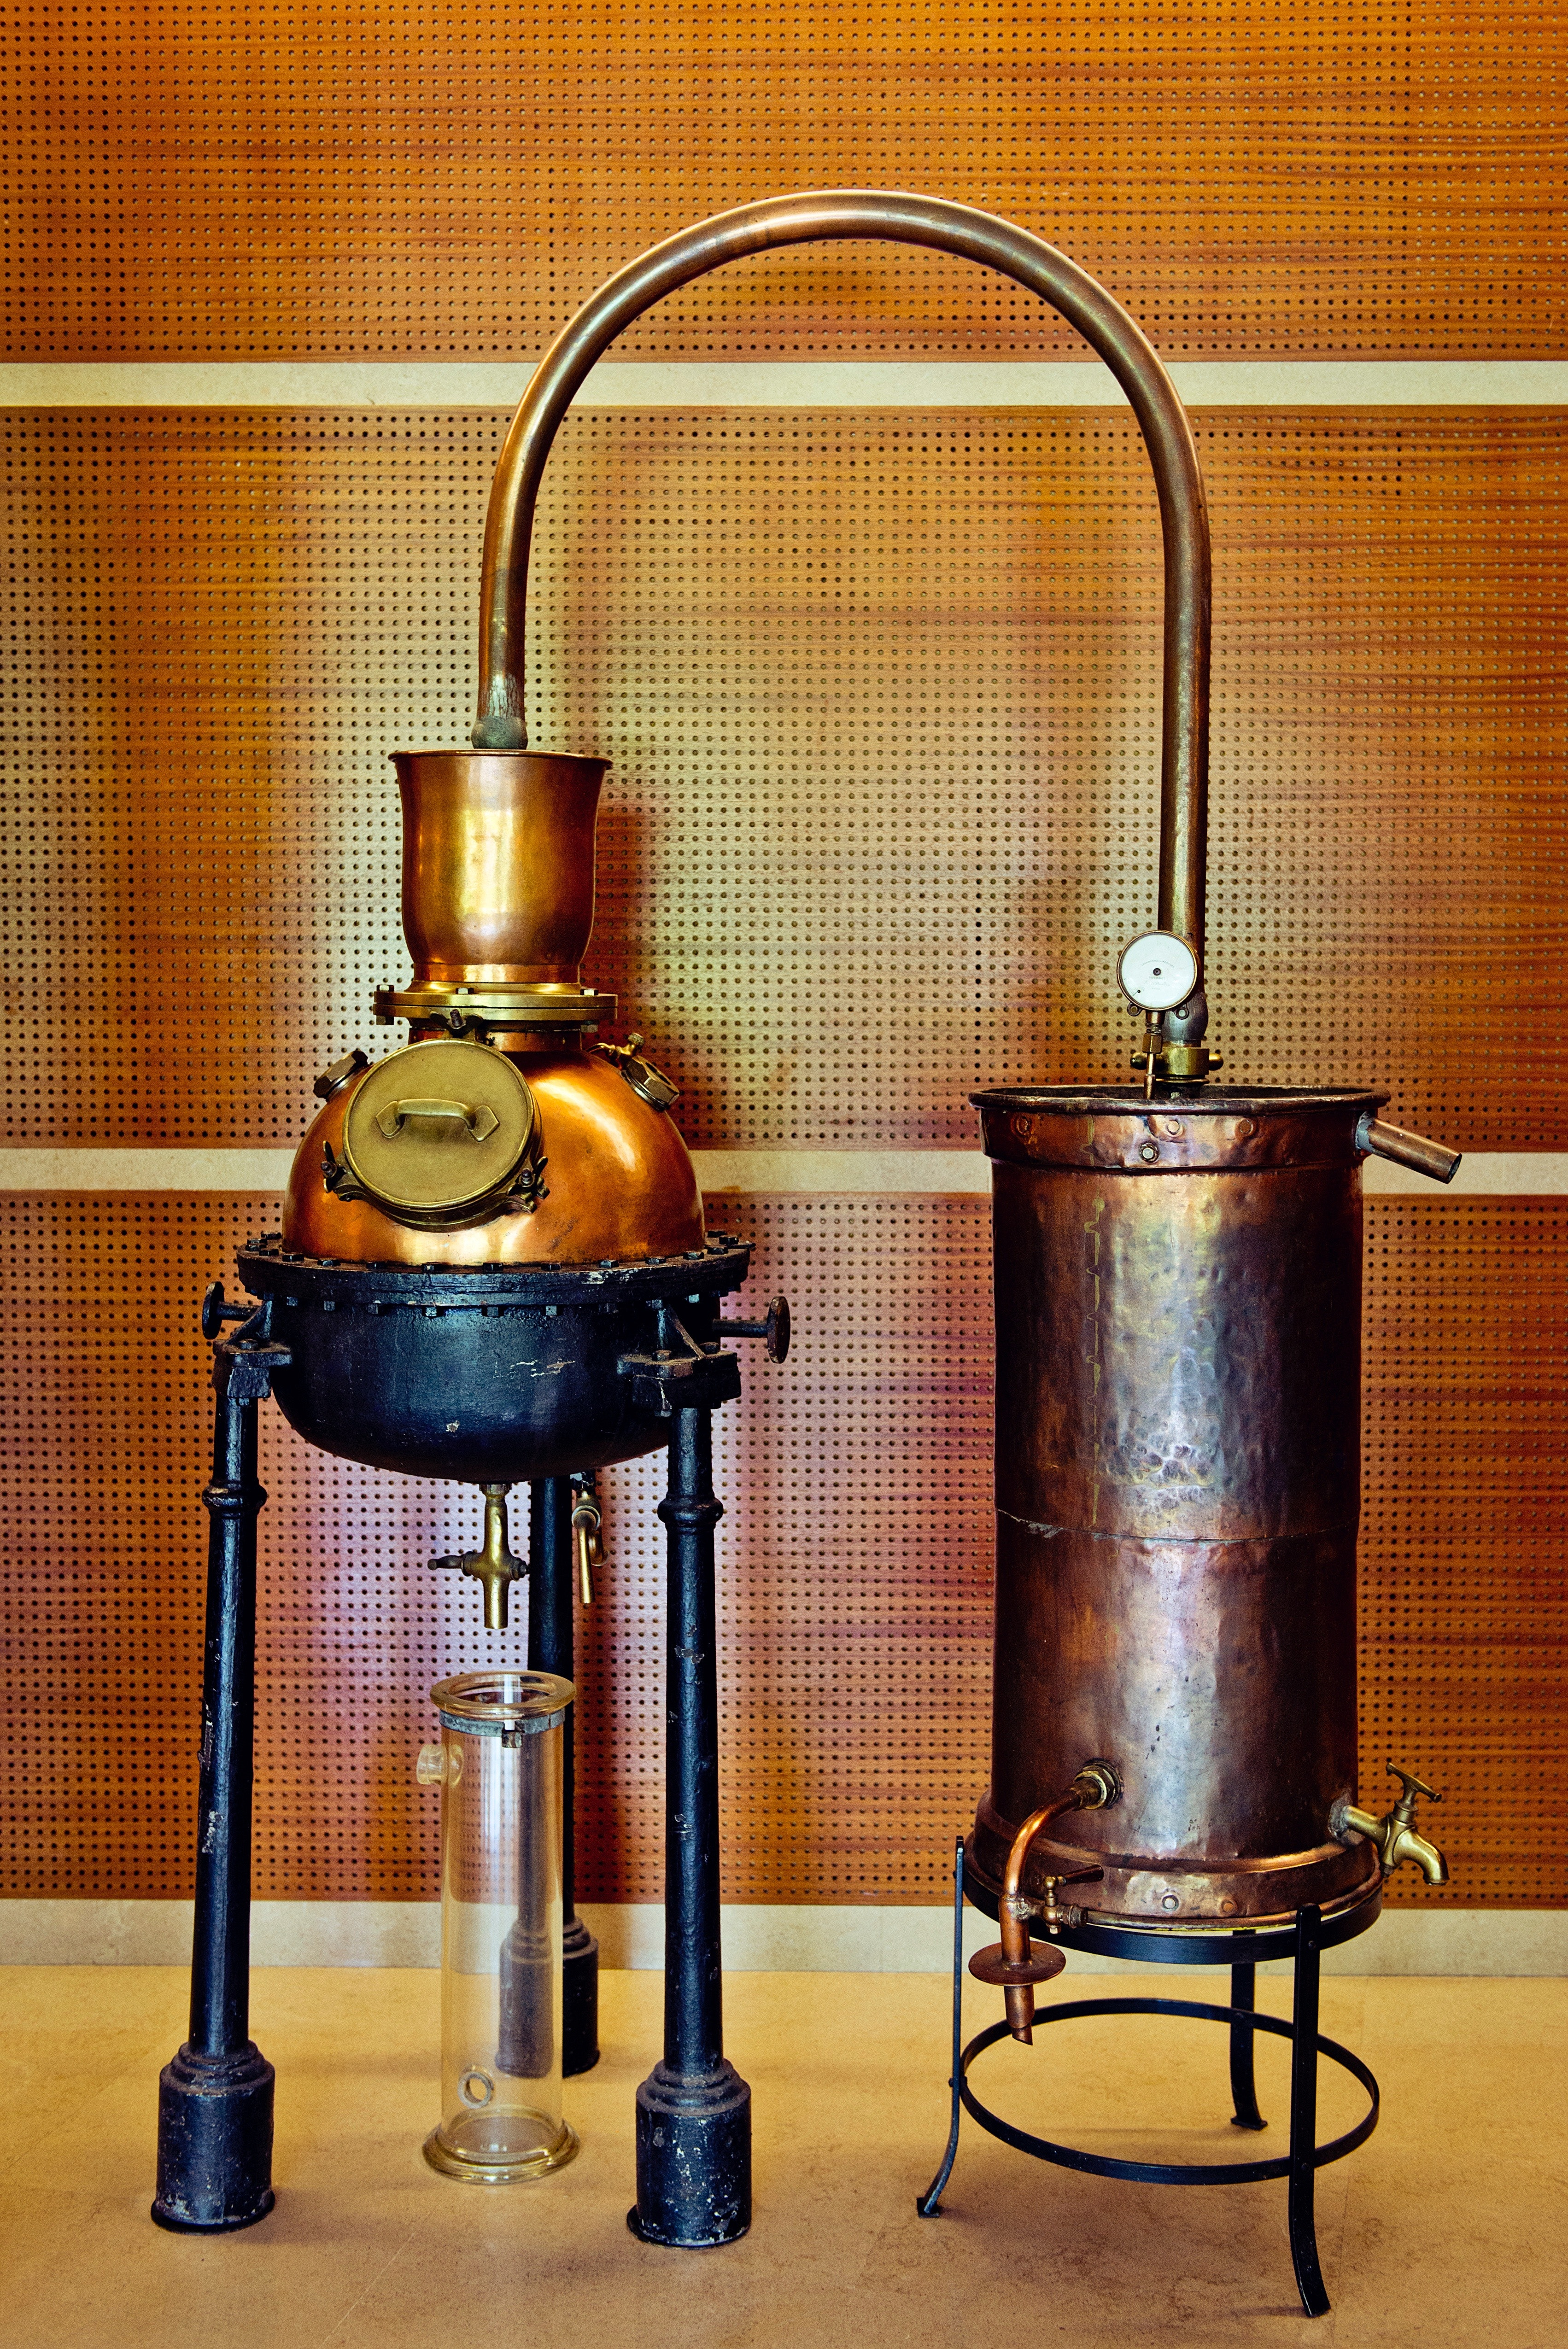 The chemisty of perfume making in Grasse has grown more complex since perfumers first used the copper distilling equipment at Robertet in the late 19th century.